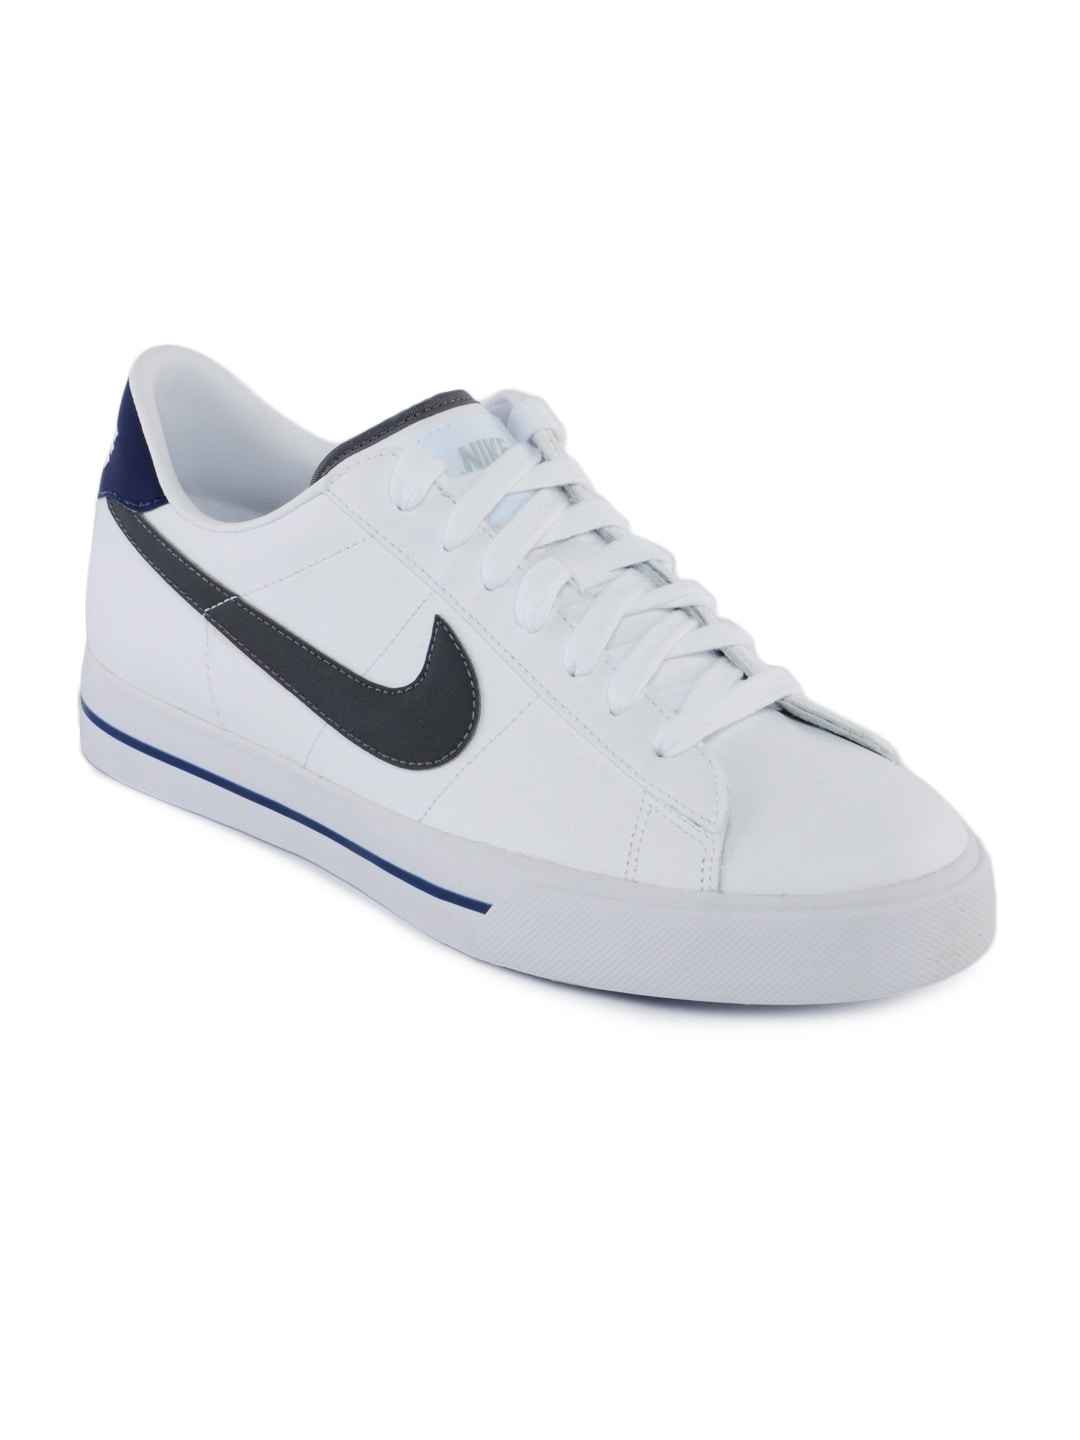 Nike 318333-139 Men Sweet Classic Leather White Shoes- Price in India f90d74bba